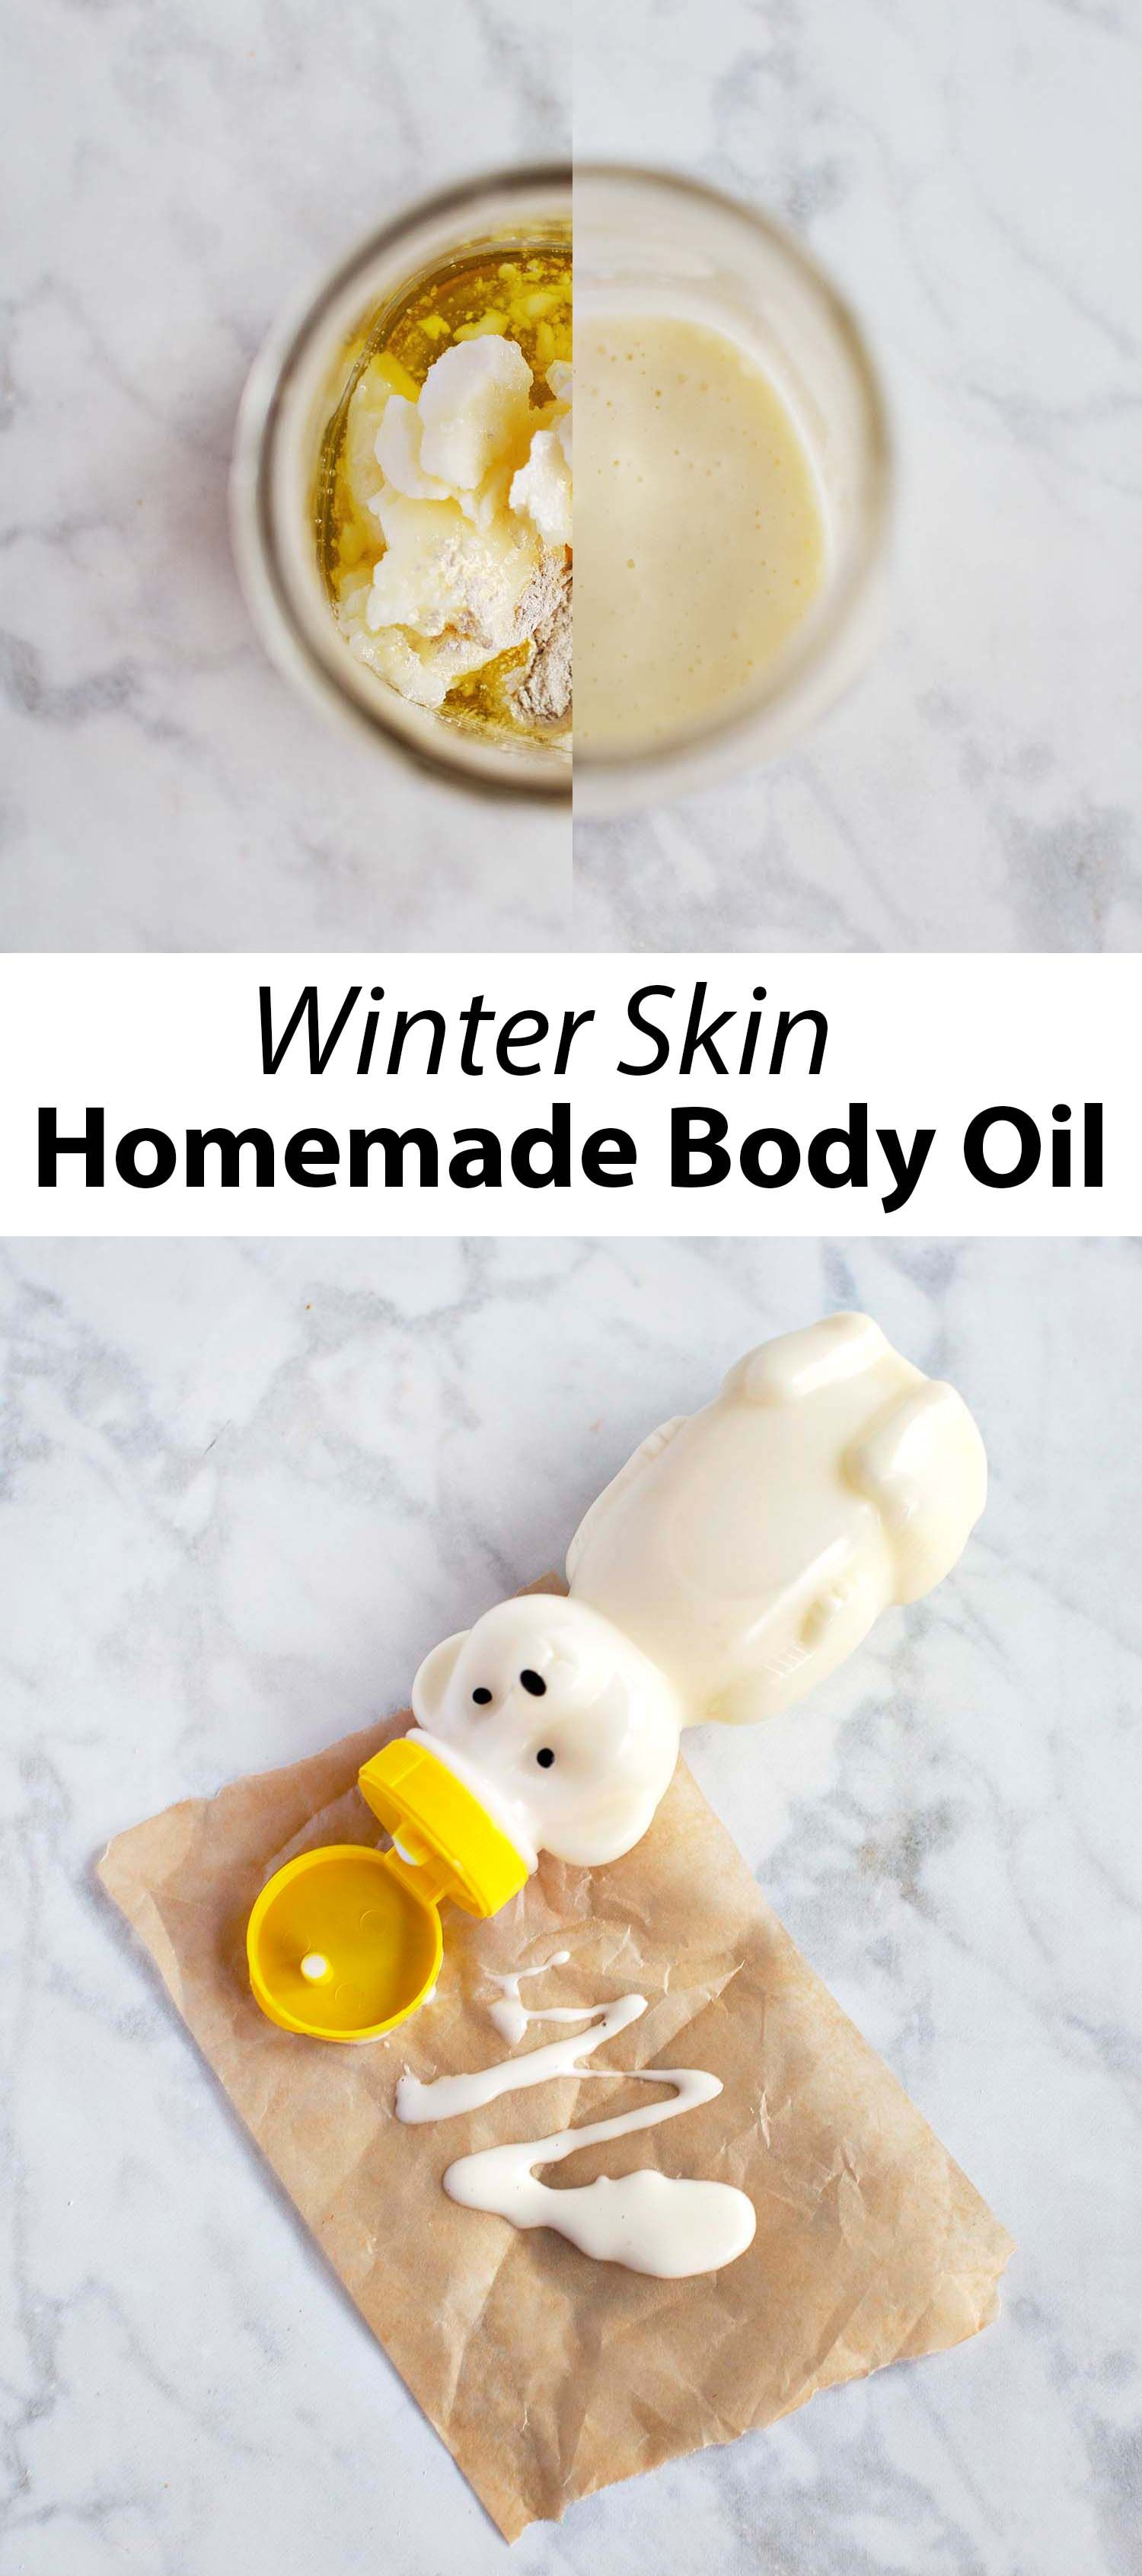 Winter Skin Homemade Body Oil #skincare